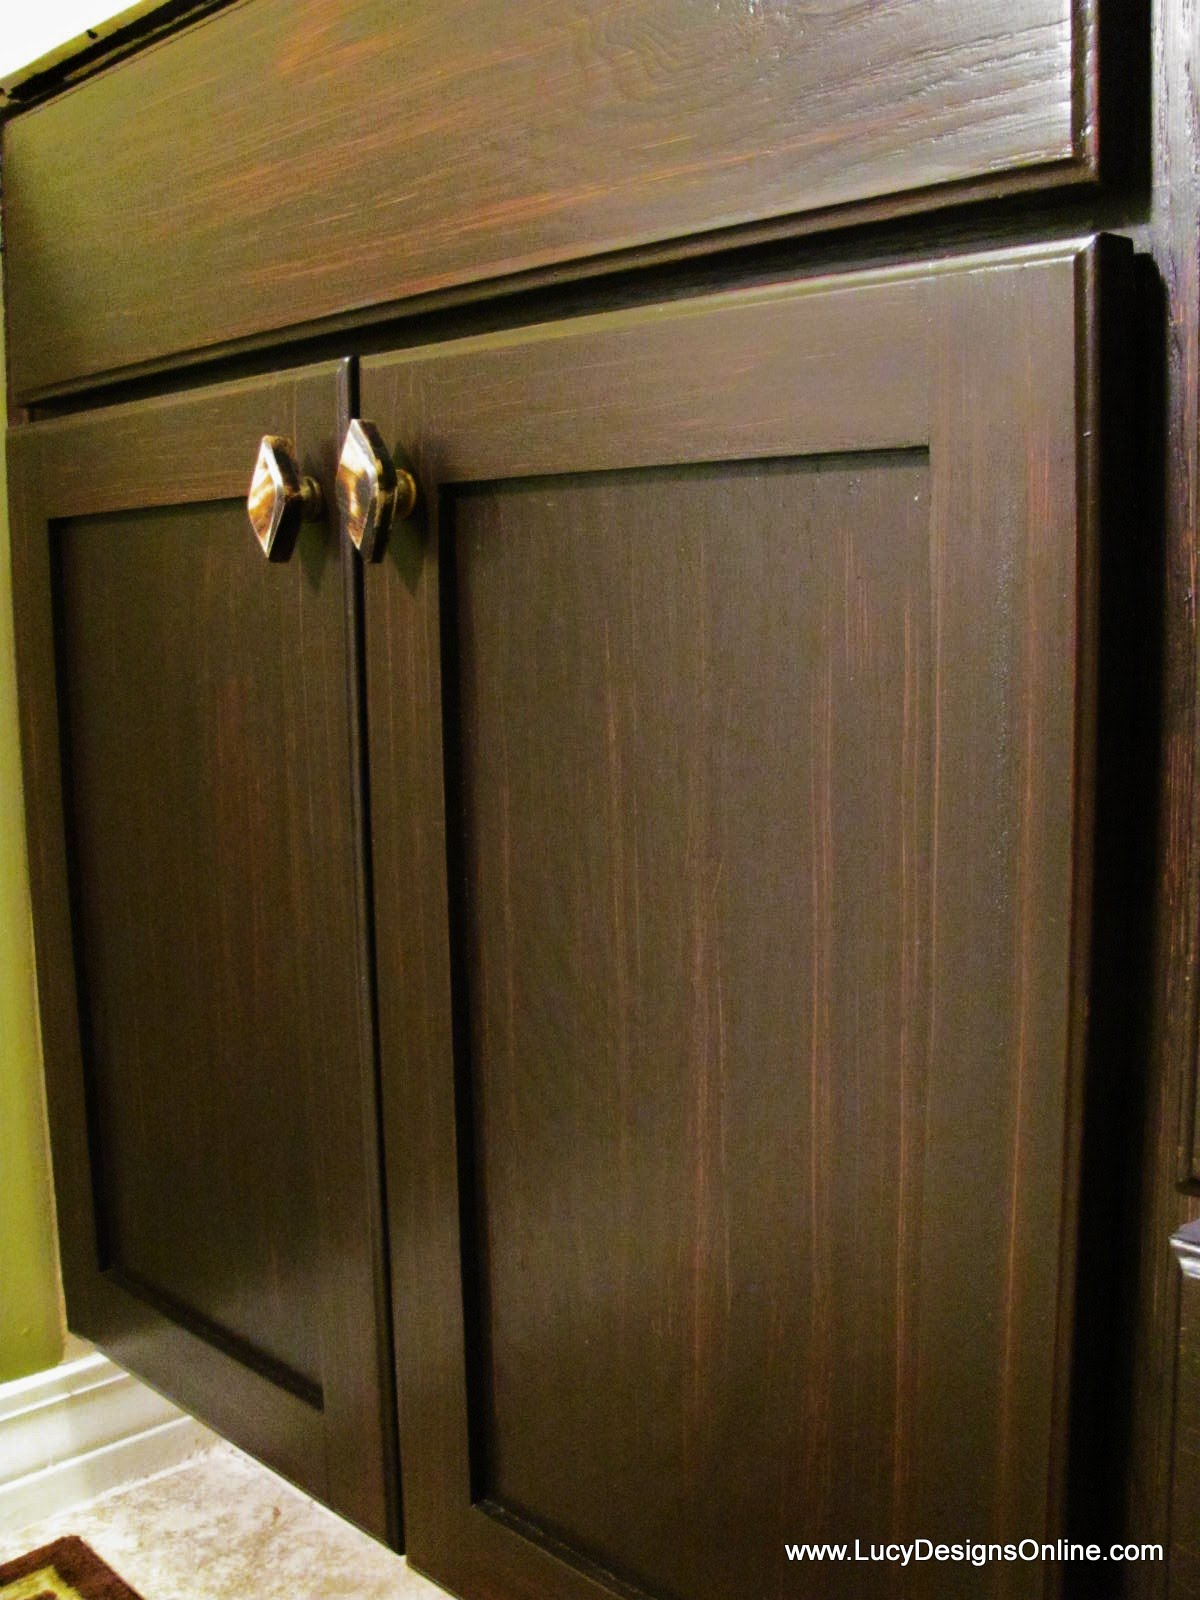 Can You Paint Kitchen Cabinets Without Sanding How To Use Gel Stain Diy Gel Stained Master Bath Cabinet